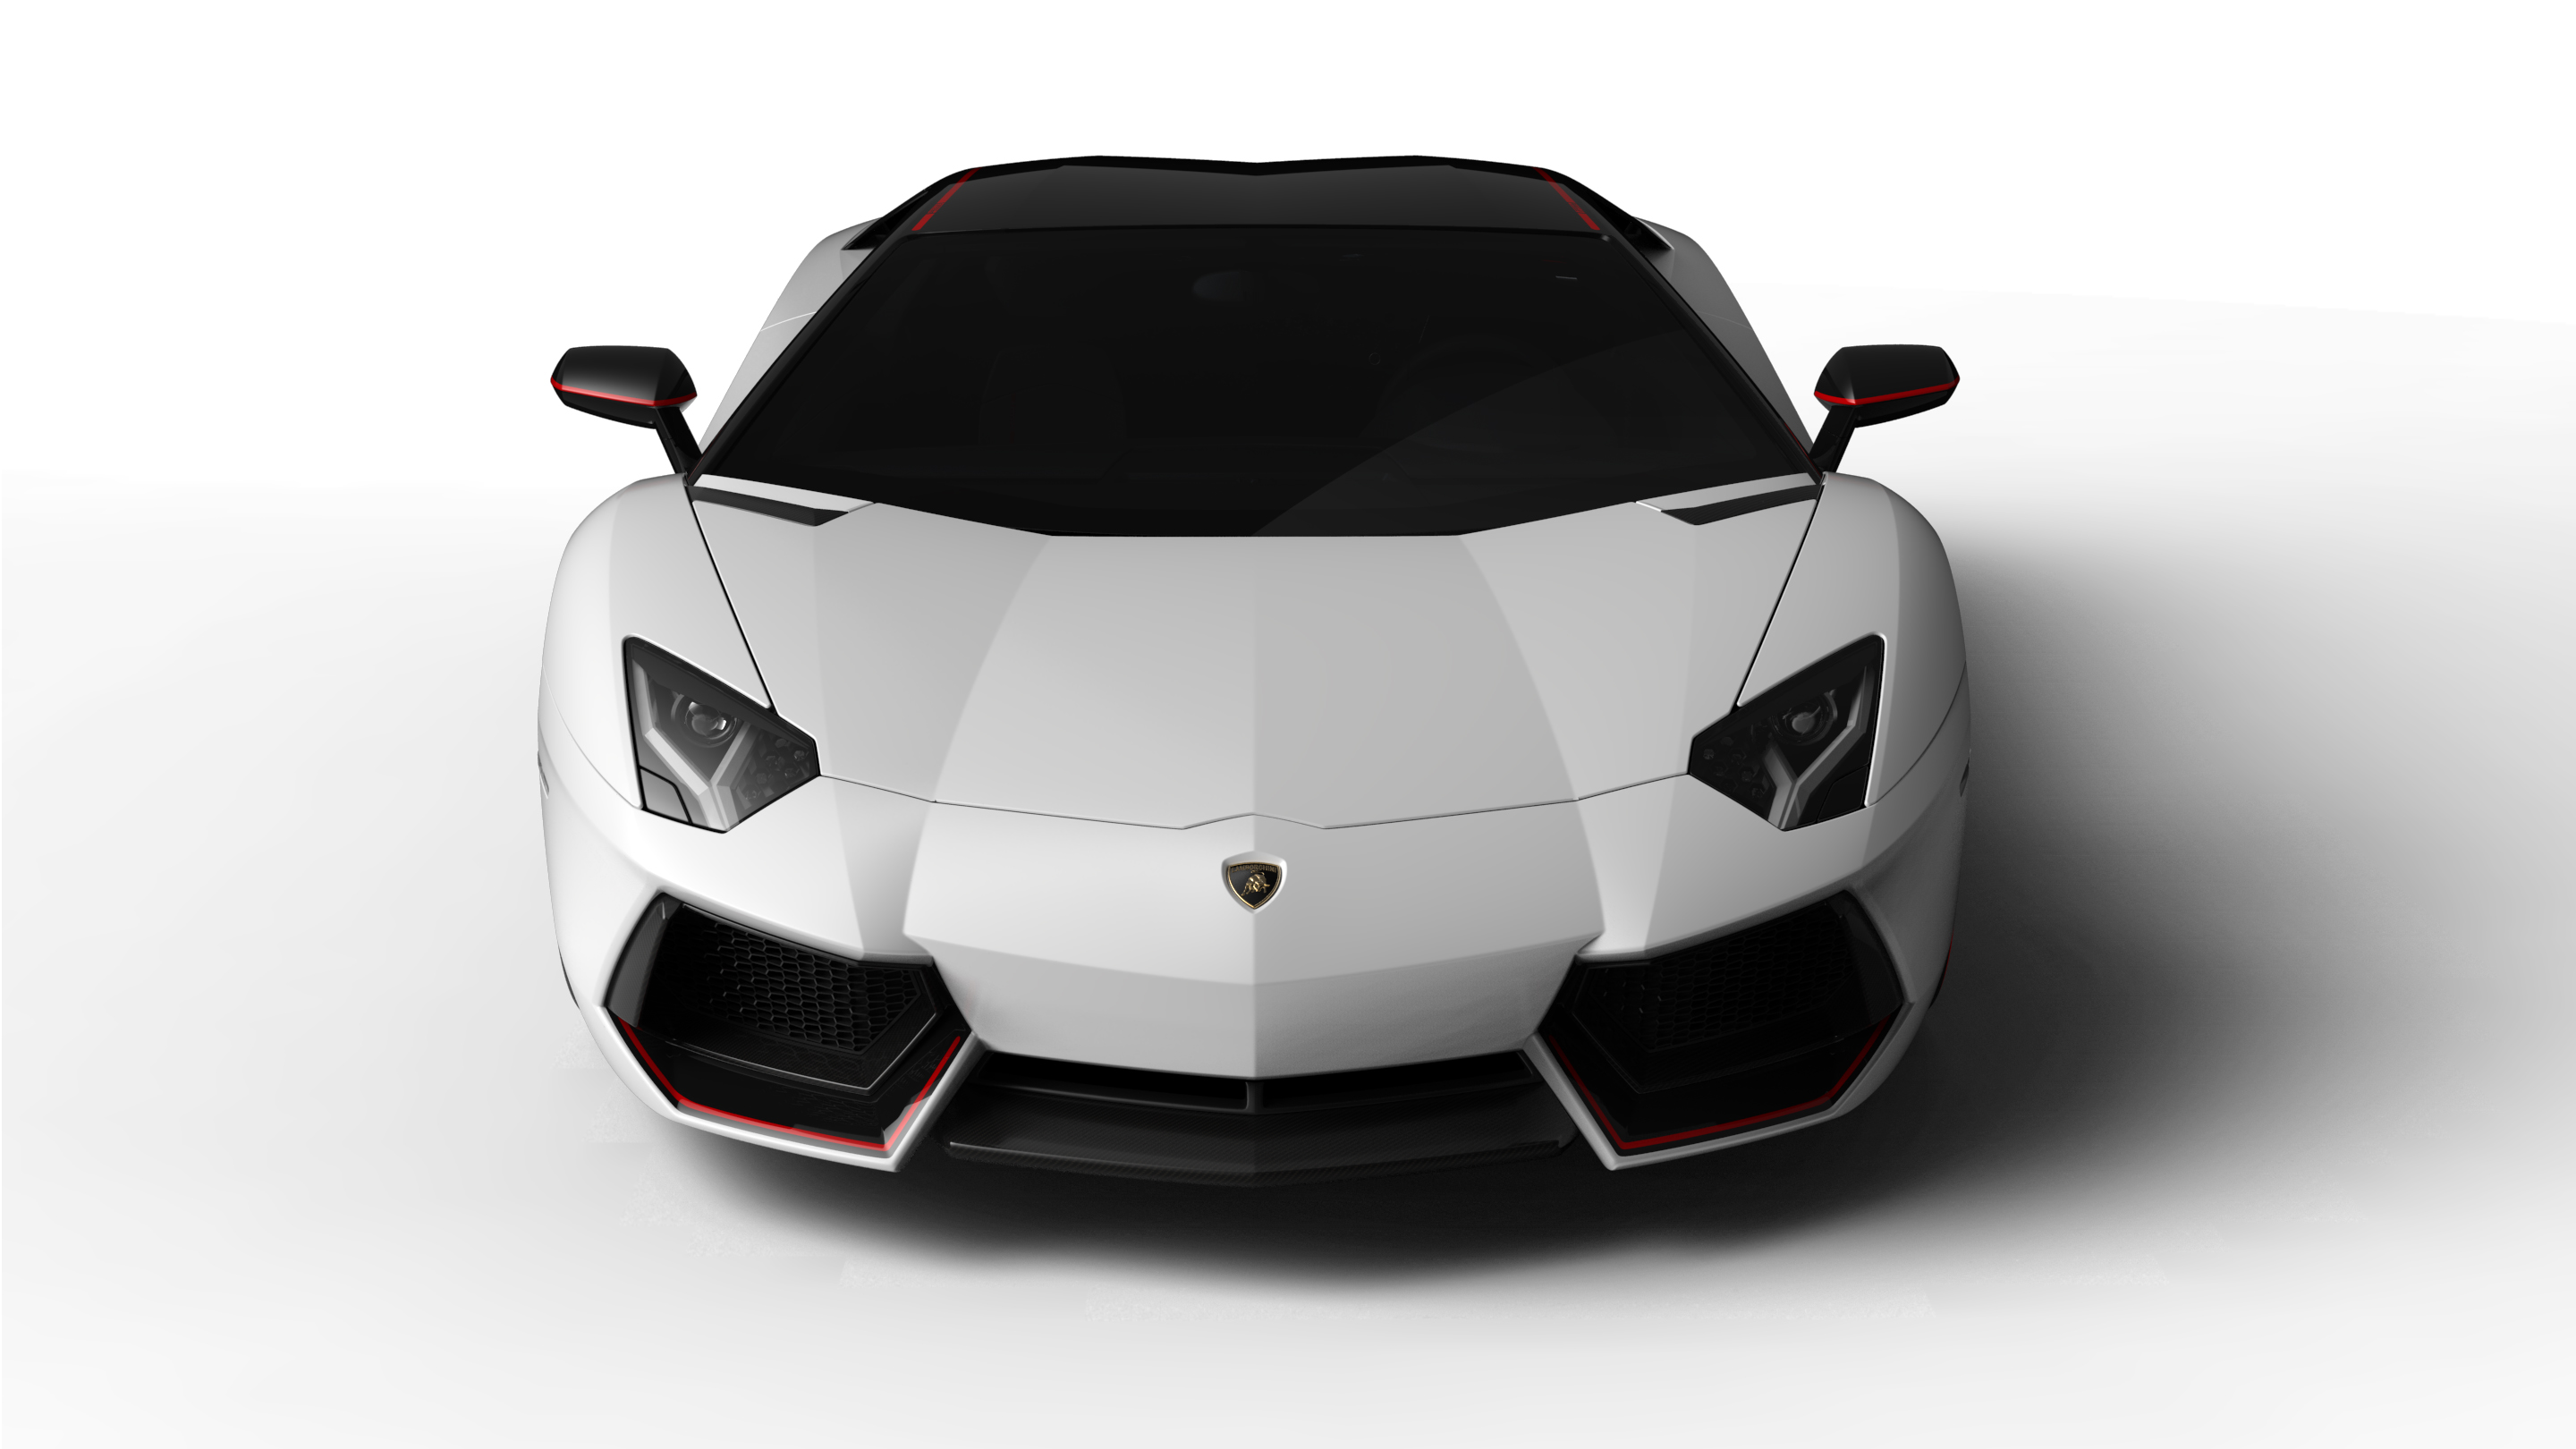 Lamborghini Aventador LP 700-4 Pirelli Edition available in 2015